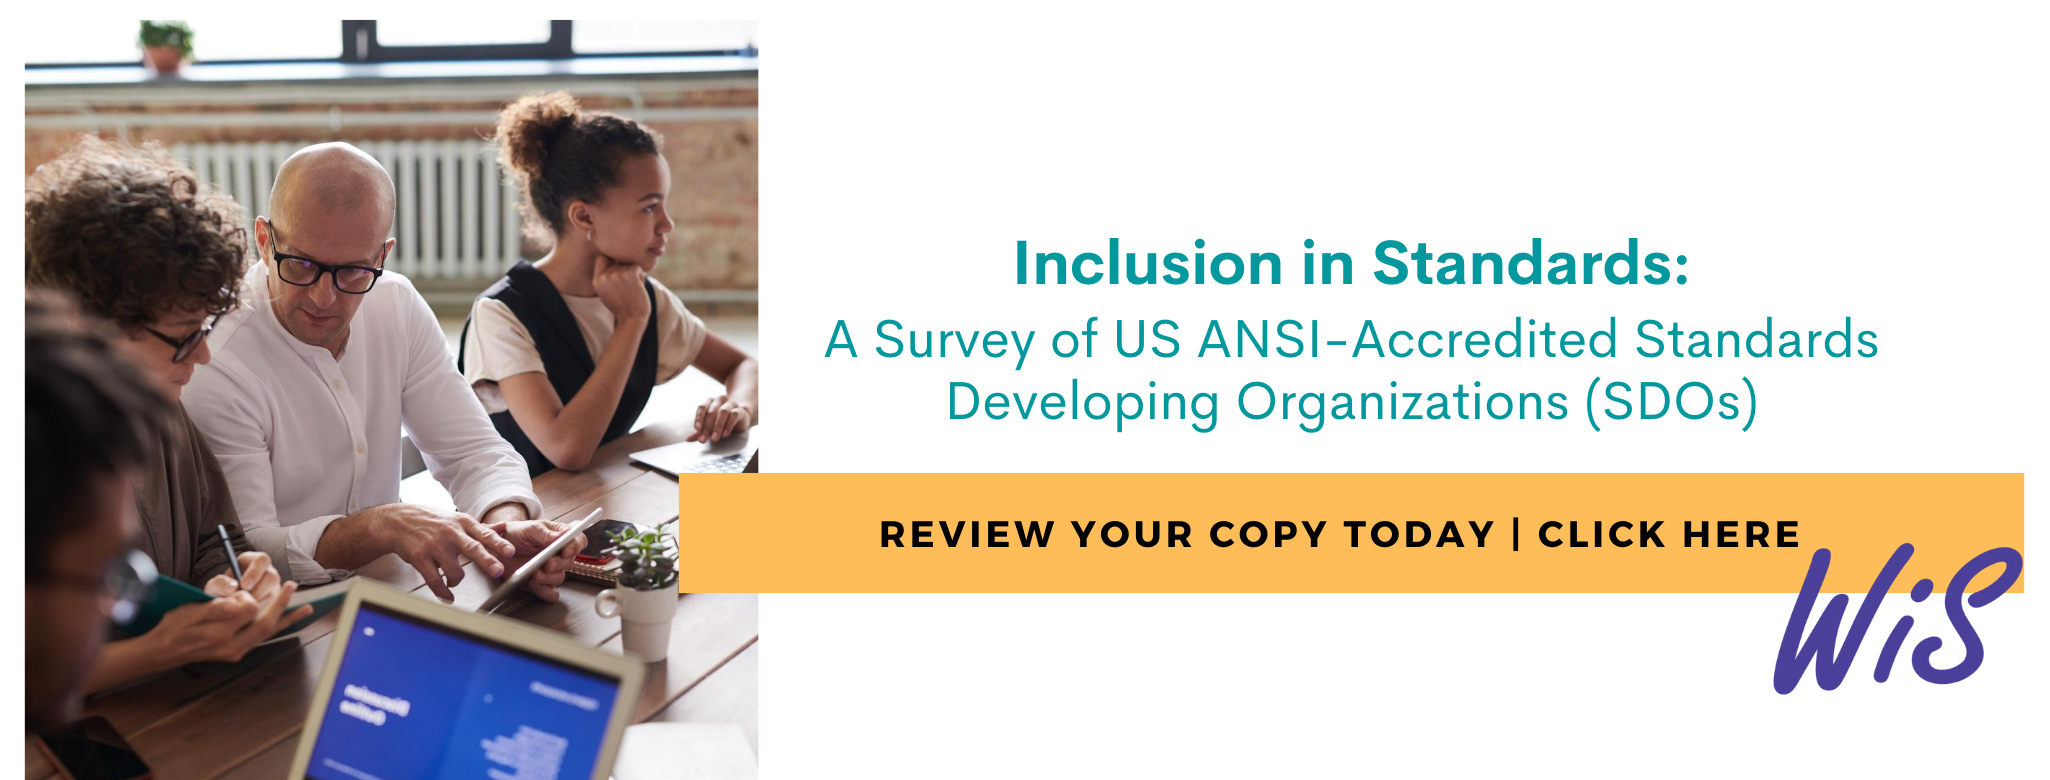 Click image to visit the Inclusion in Standards 2020 Survey Page